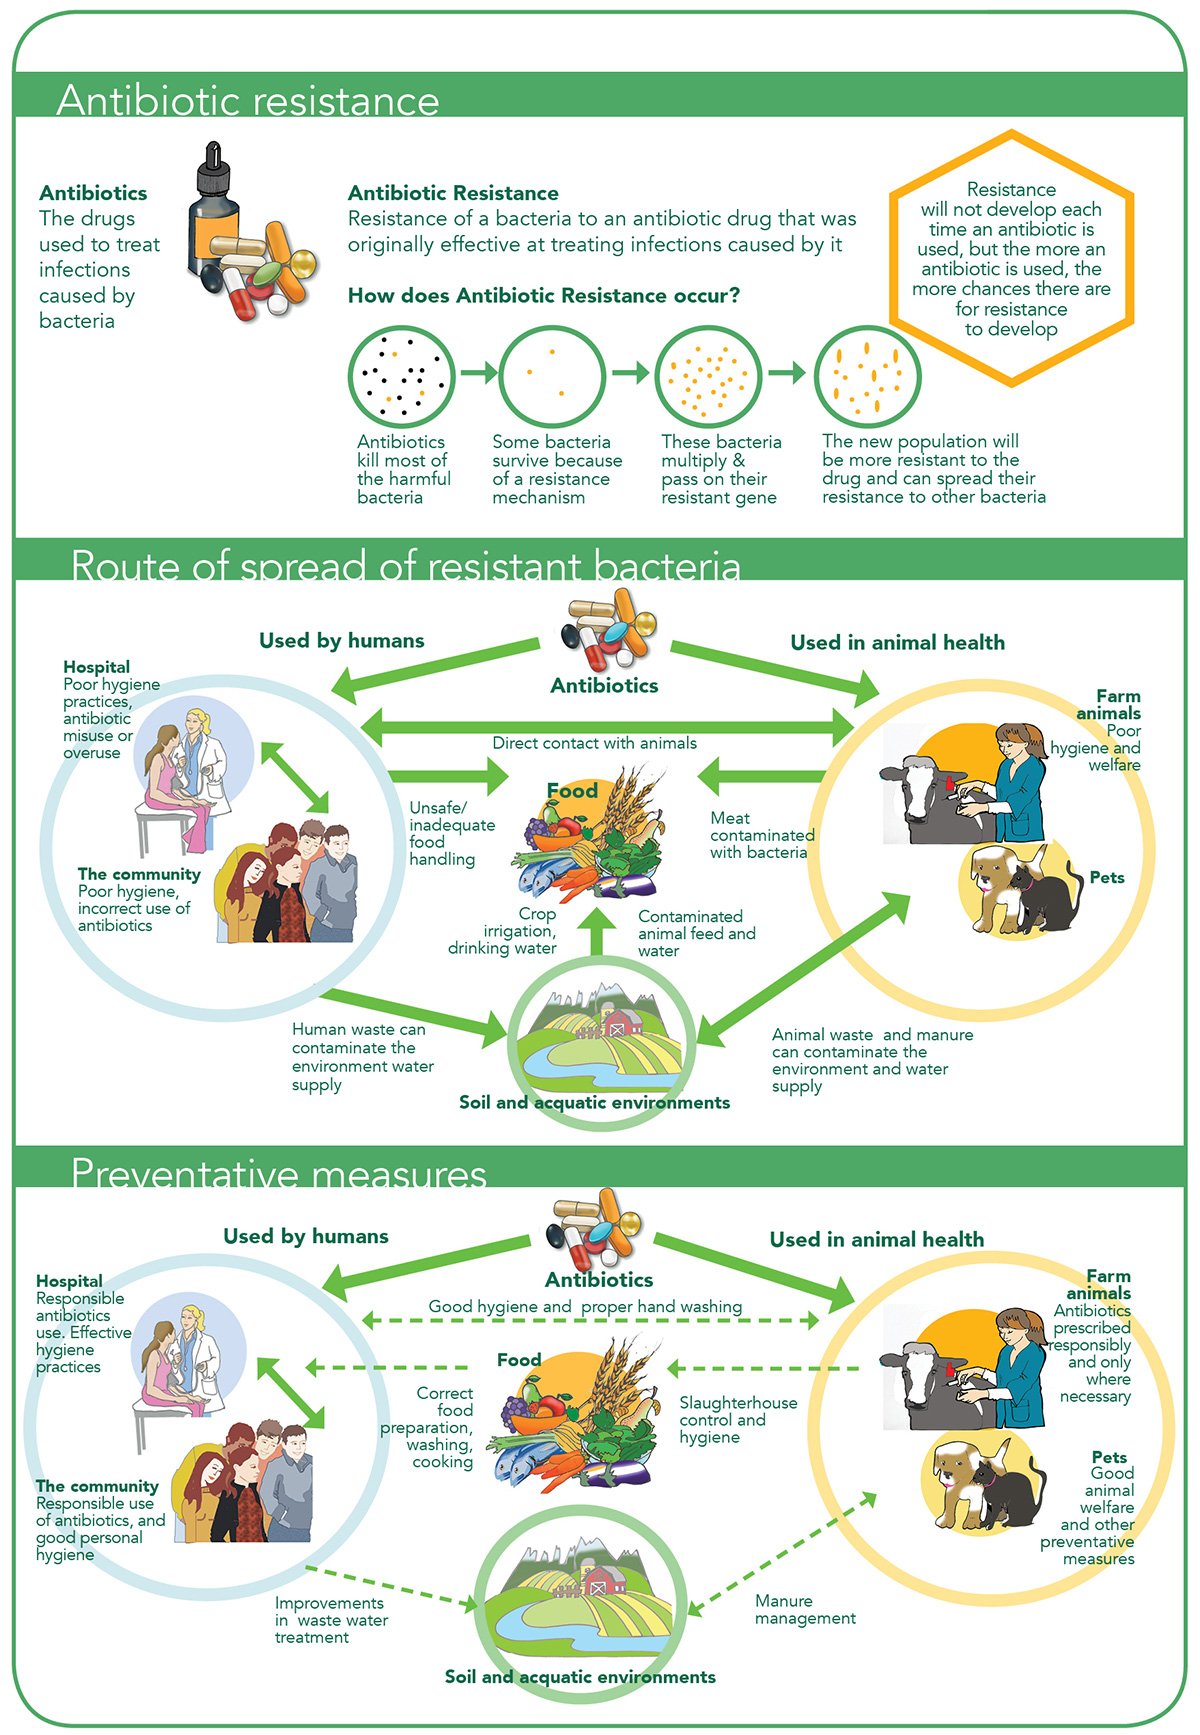 Anitibiotic Resistance - The European Food Information Council